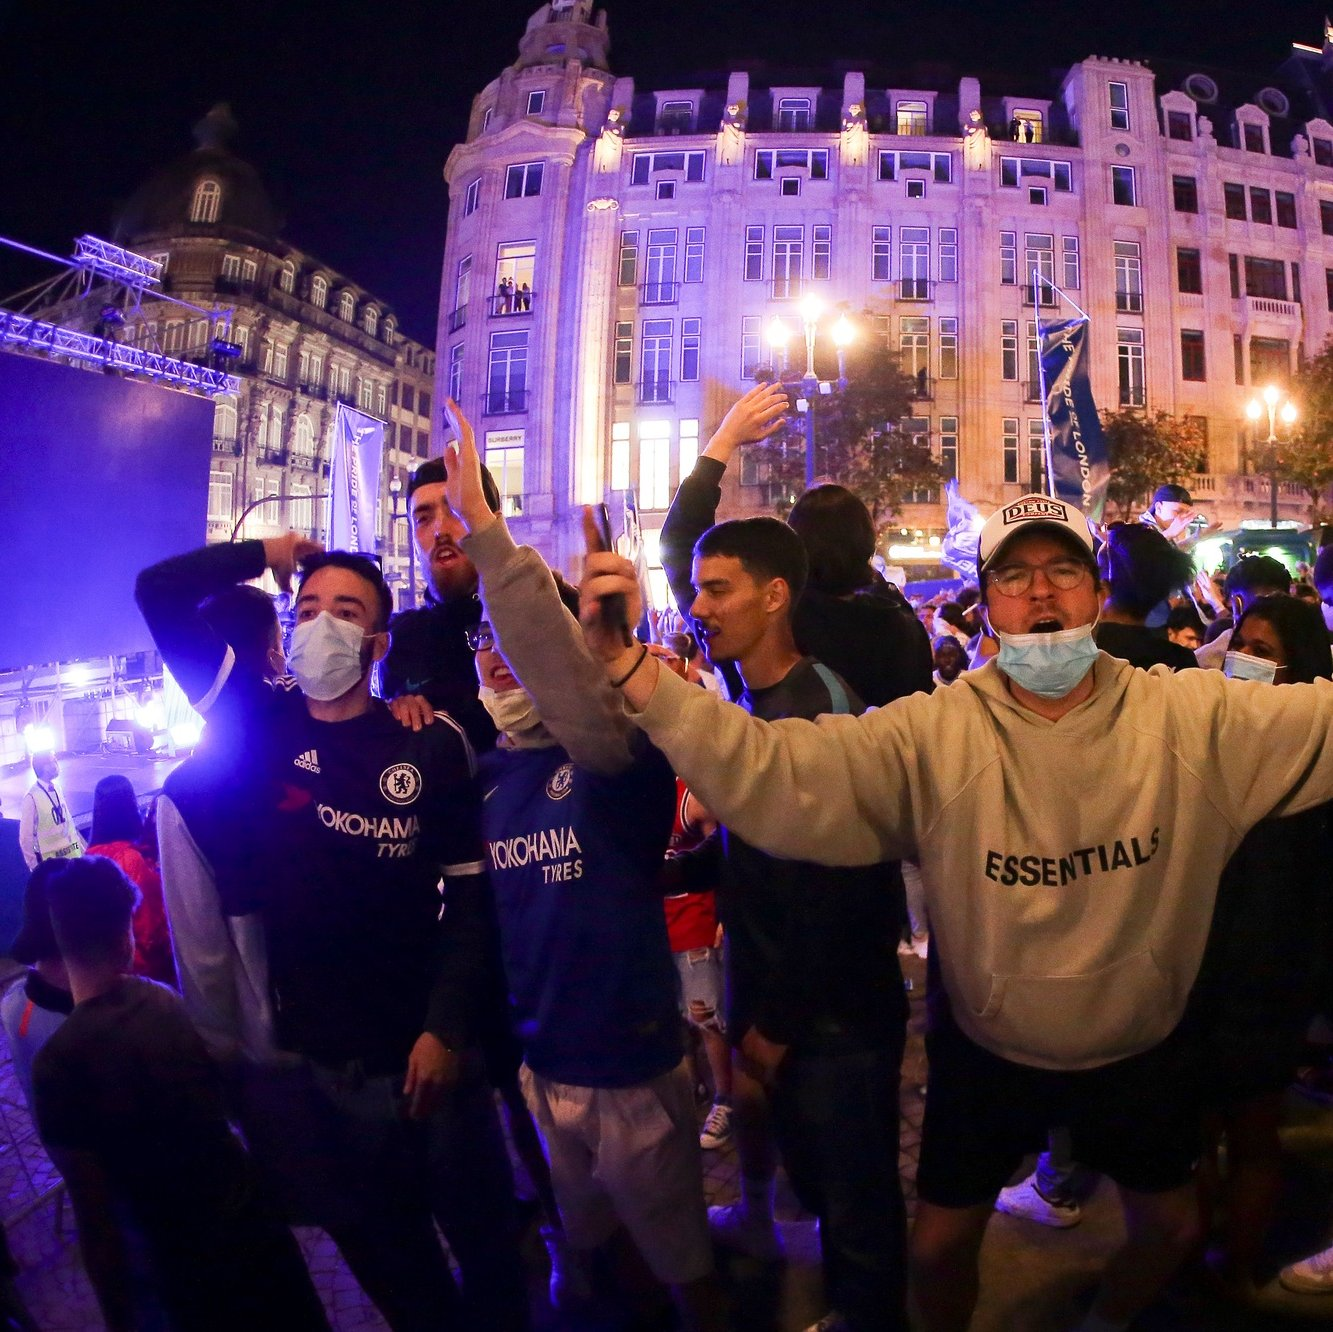 Chelsea supporters celebrate in Avenida dos Aliados after their team defeated Manchester City in the final of UEFA Champions League soccer match held in Porto, Portugal, 29th May 2021.  MANUEL FERNANDO ARAUJO/LUSA